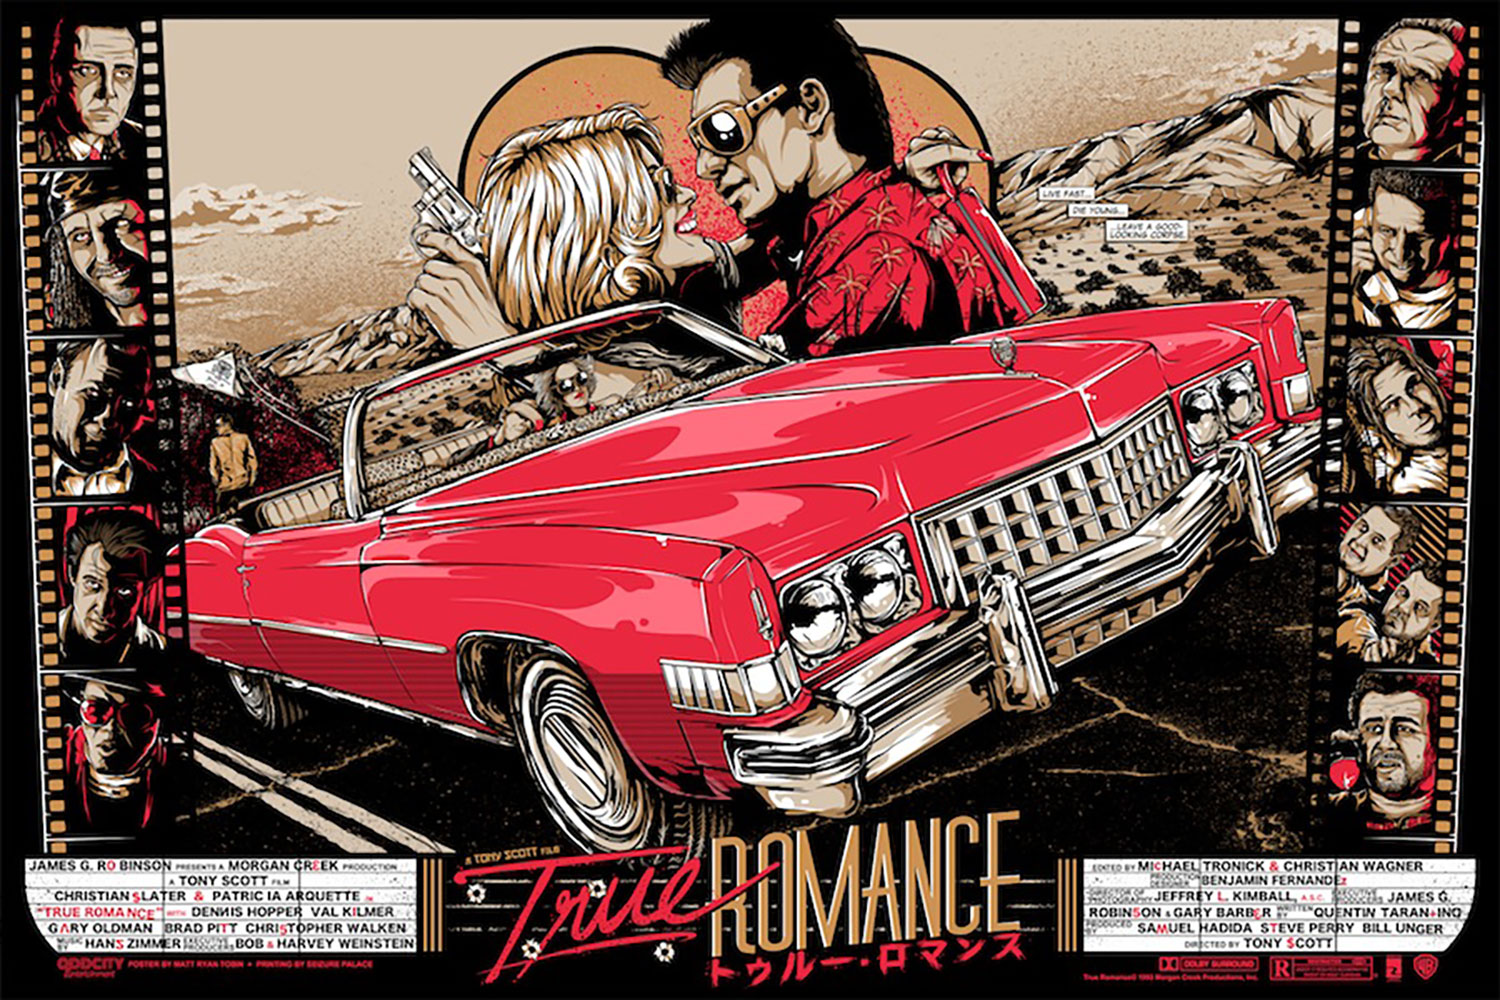 True Romance - Variant par Tony Scott